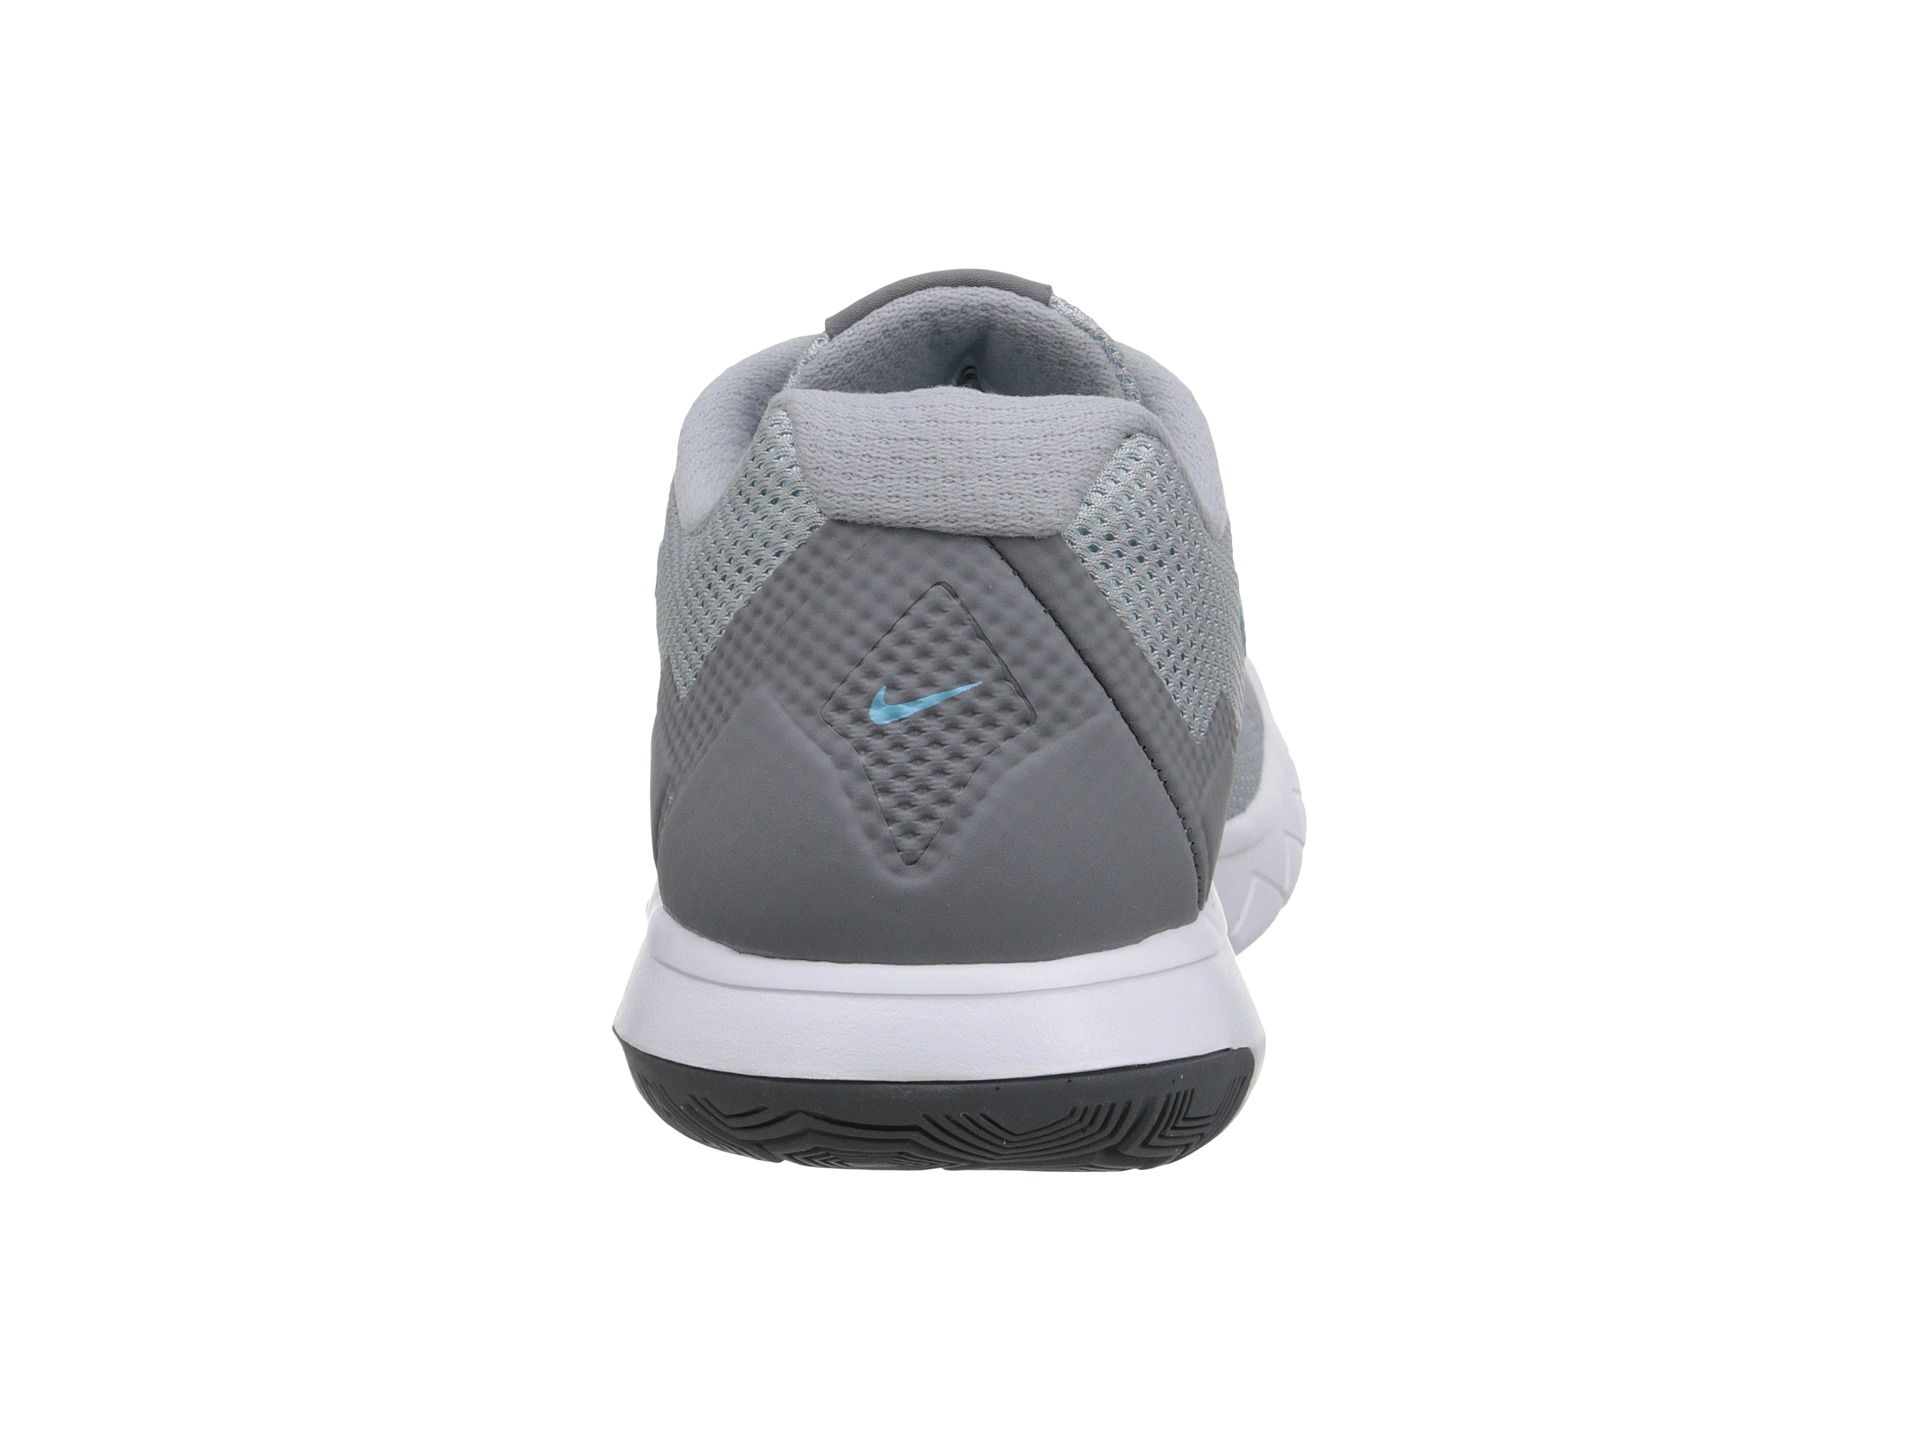 Nike Flex Experience Run 4 in Gray (Wolf Grey/Cool Grey/White/Tide P) | Lyst